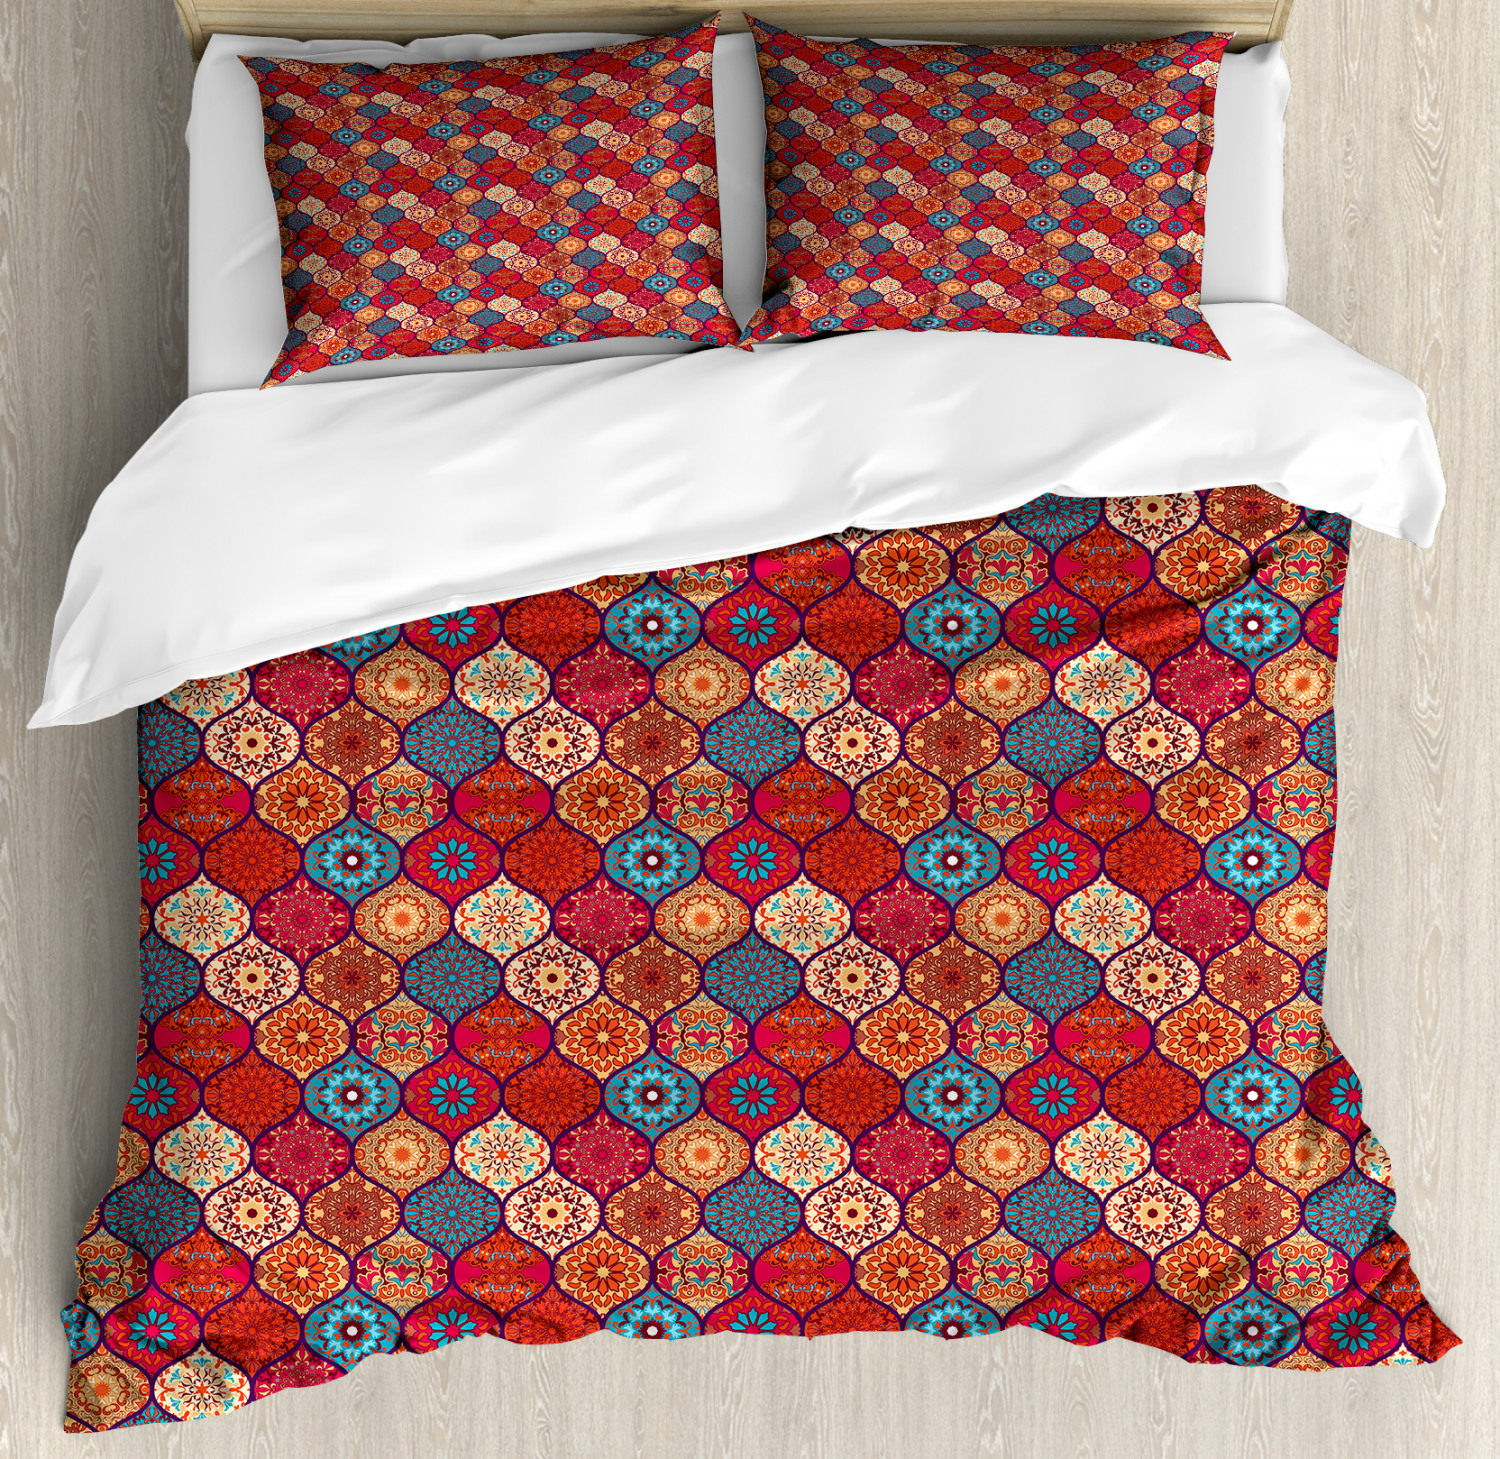 Moroccan Duvet Cover Set with Pillow Shams Oriental Wavy Natural Print